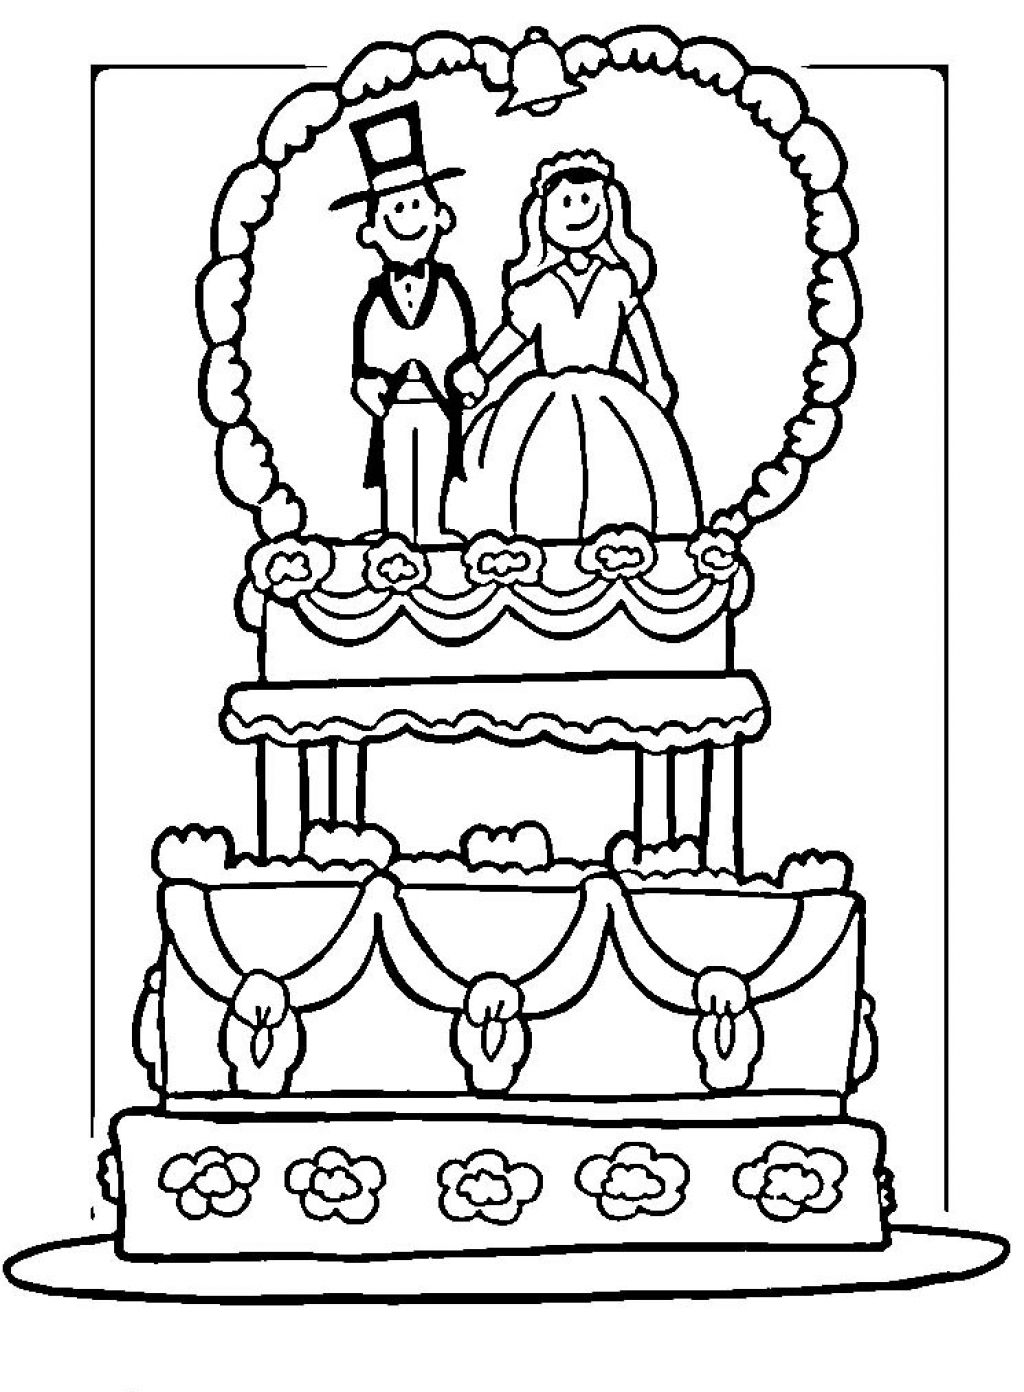 photograph relating to Free Printable Wedding Coloring Pages referred to as Marriage Coloring Internet pages - Ideal Coloring Internet pages For Small children